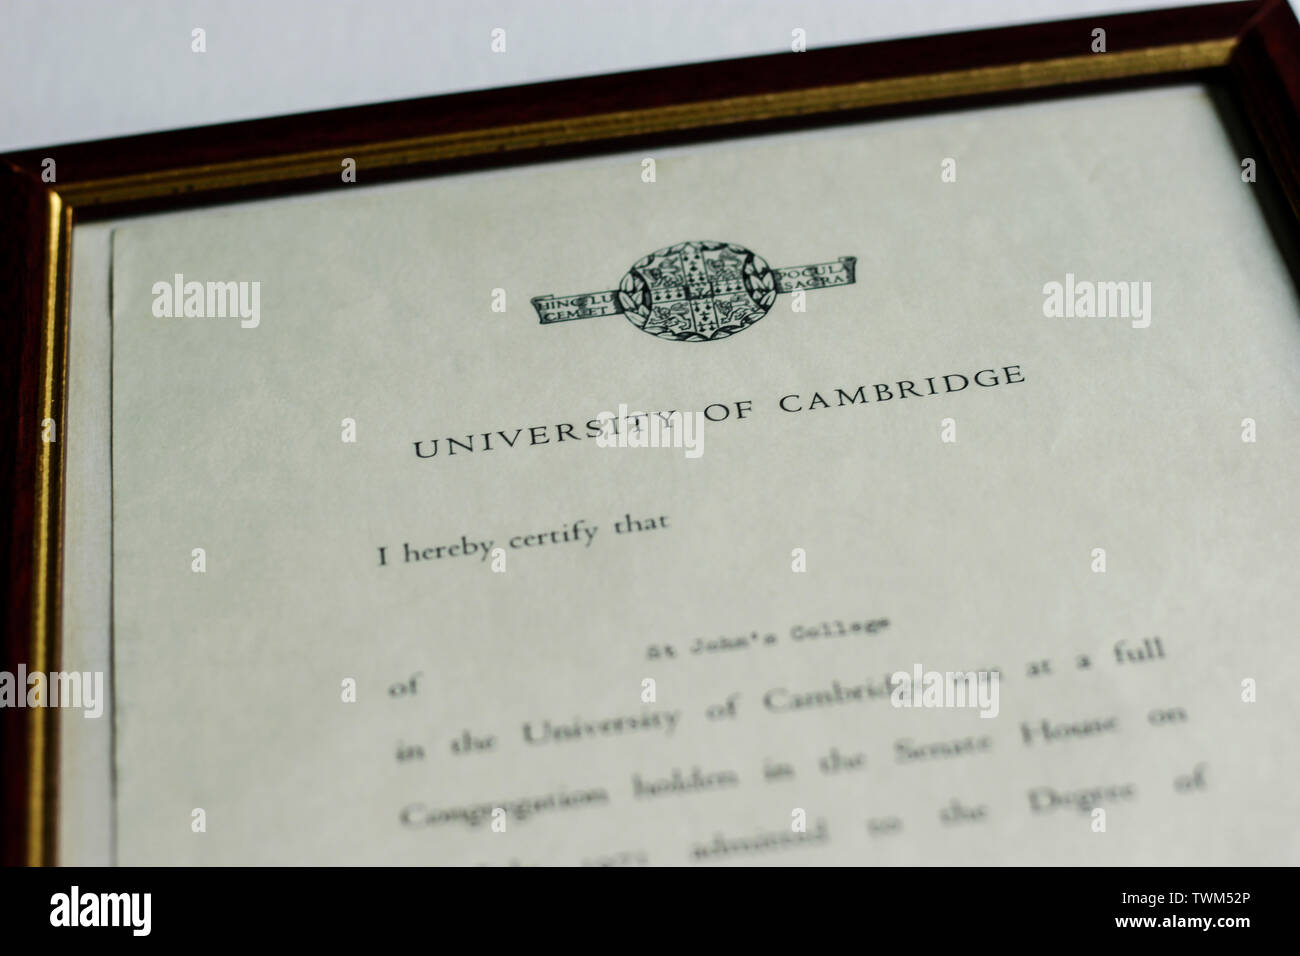 31 July 1971, England, United Kingdom. Certificate of Attaining MA, Master of Arts in the University of Cambridge. Senate House, St John's College - Stock Image